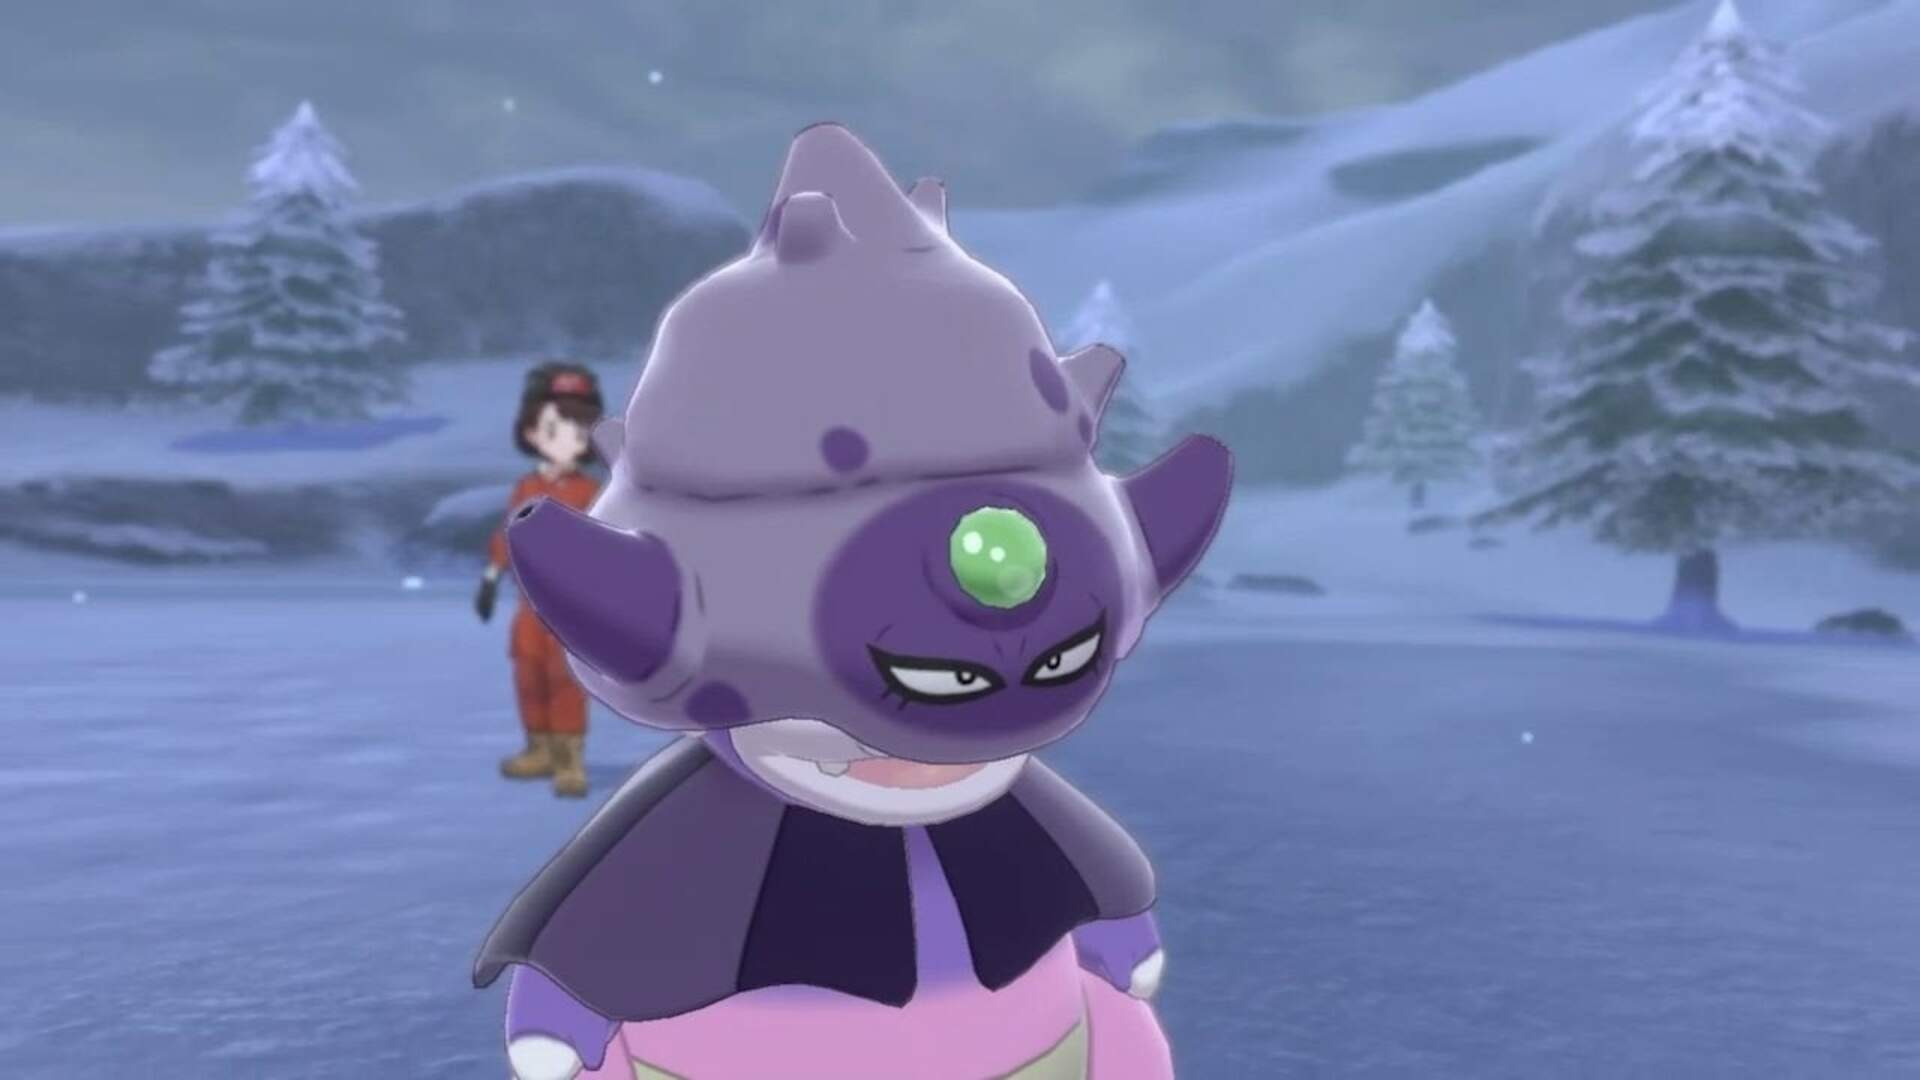 Galarian Slowking Is Pokemon Sword and Shield's Take On Half-Life's Headcrab Zombies